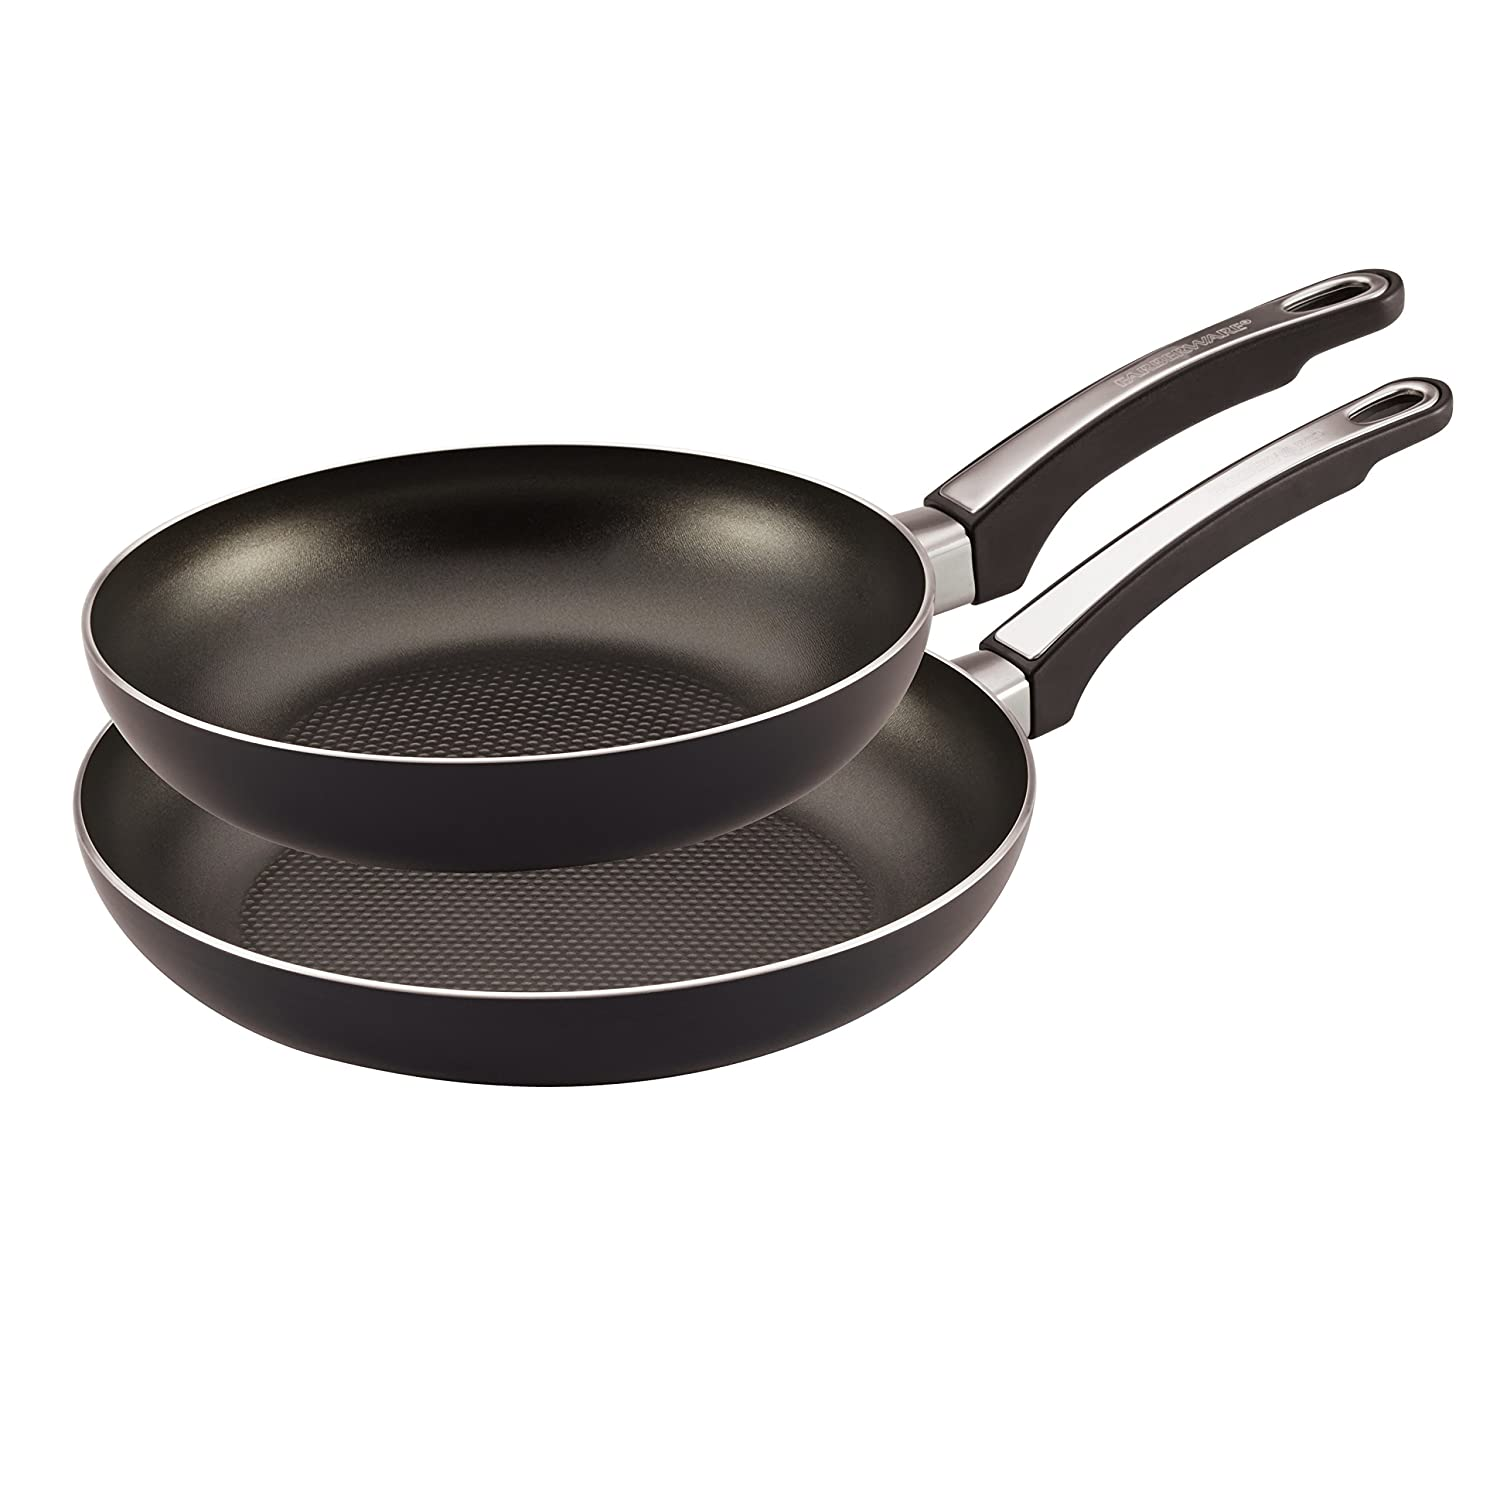 Farberware High Performance Nonstick Aluminum 9-Inch and 11-Inch Twin Pack Skillet Set, Black Meyer 21746